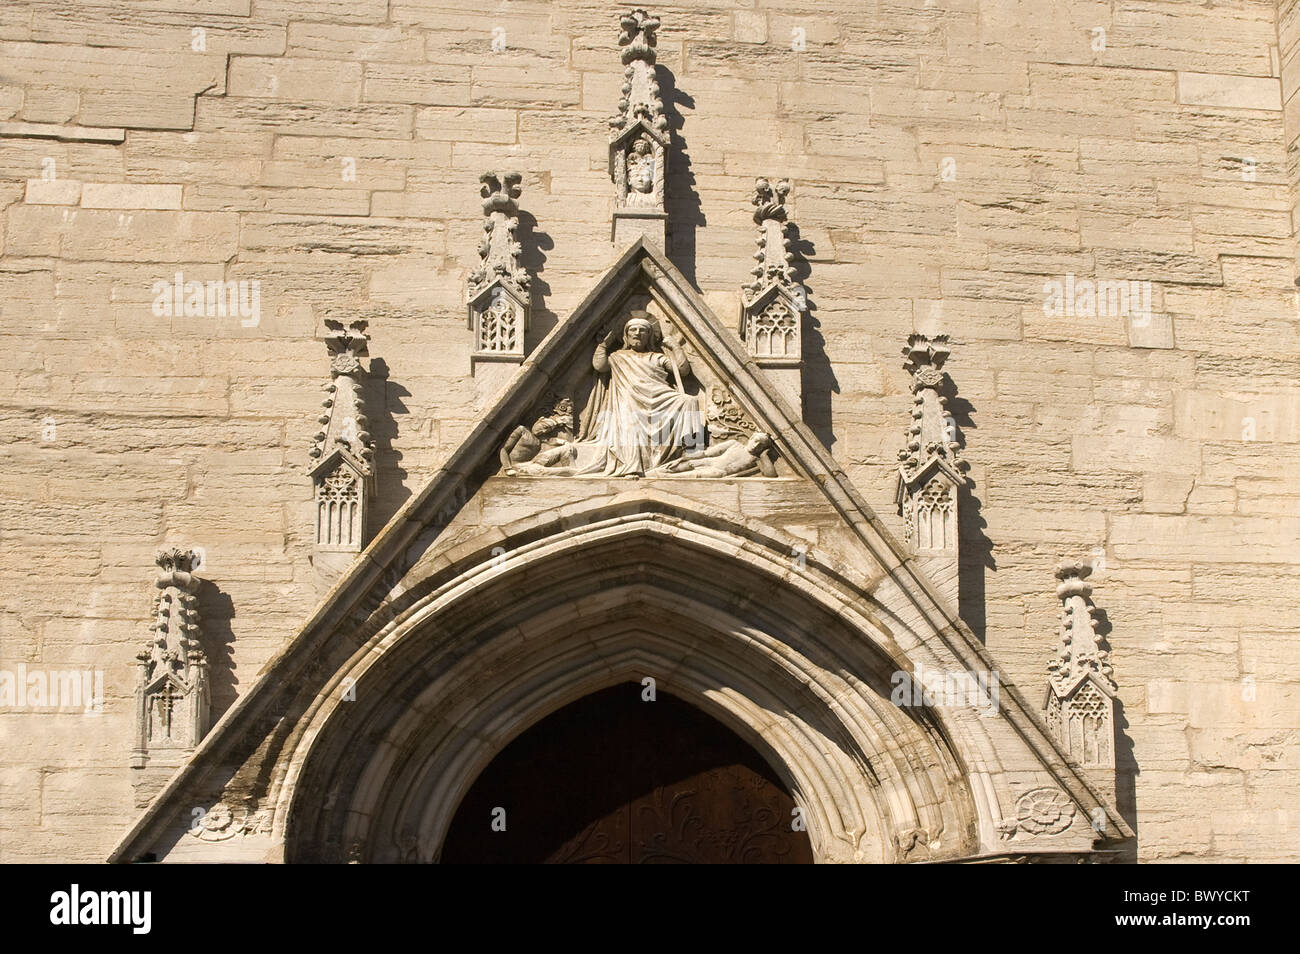 EUROPE SWEDEN Gotland Visby Svenska Kyrkan St Nicolaus Lutheran Cathedral entrance arch - Stock Image